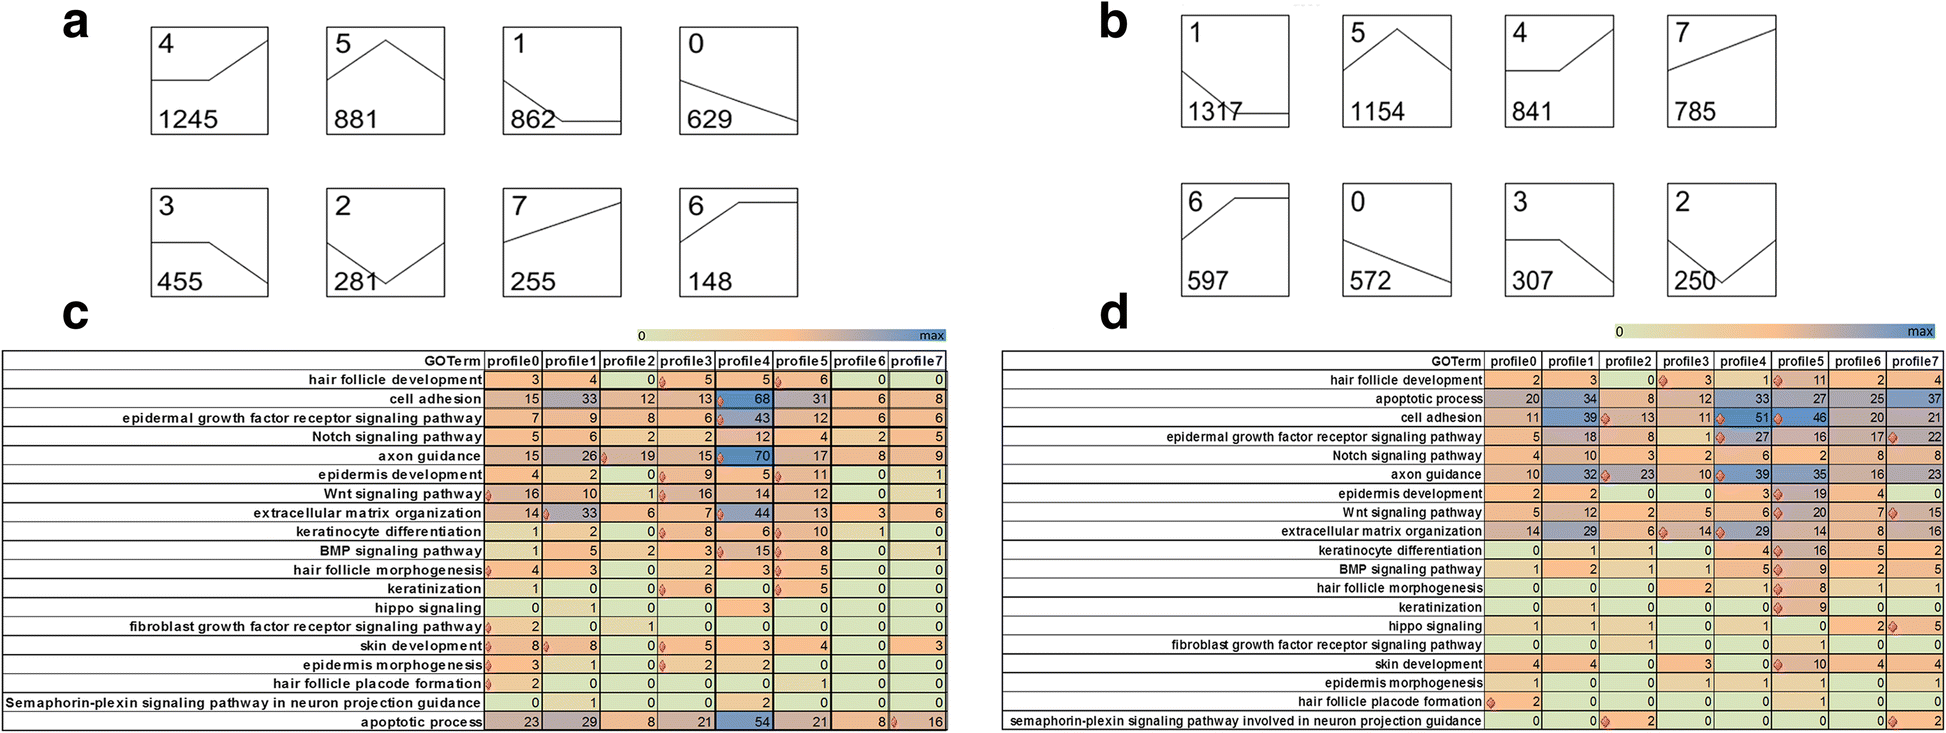 Dynamic Transcriptome Profiling Towards Understanding The Chicken Wing Diagram Have Primary Feathers Fig 2